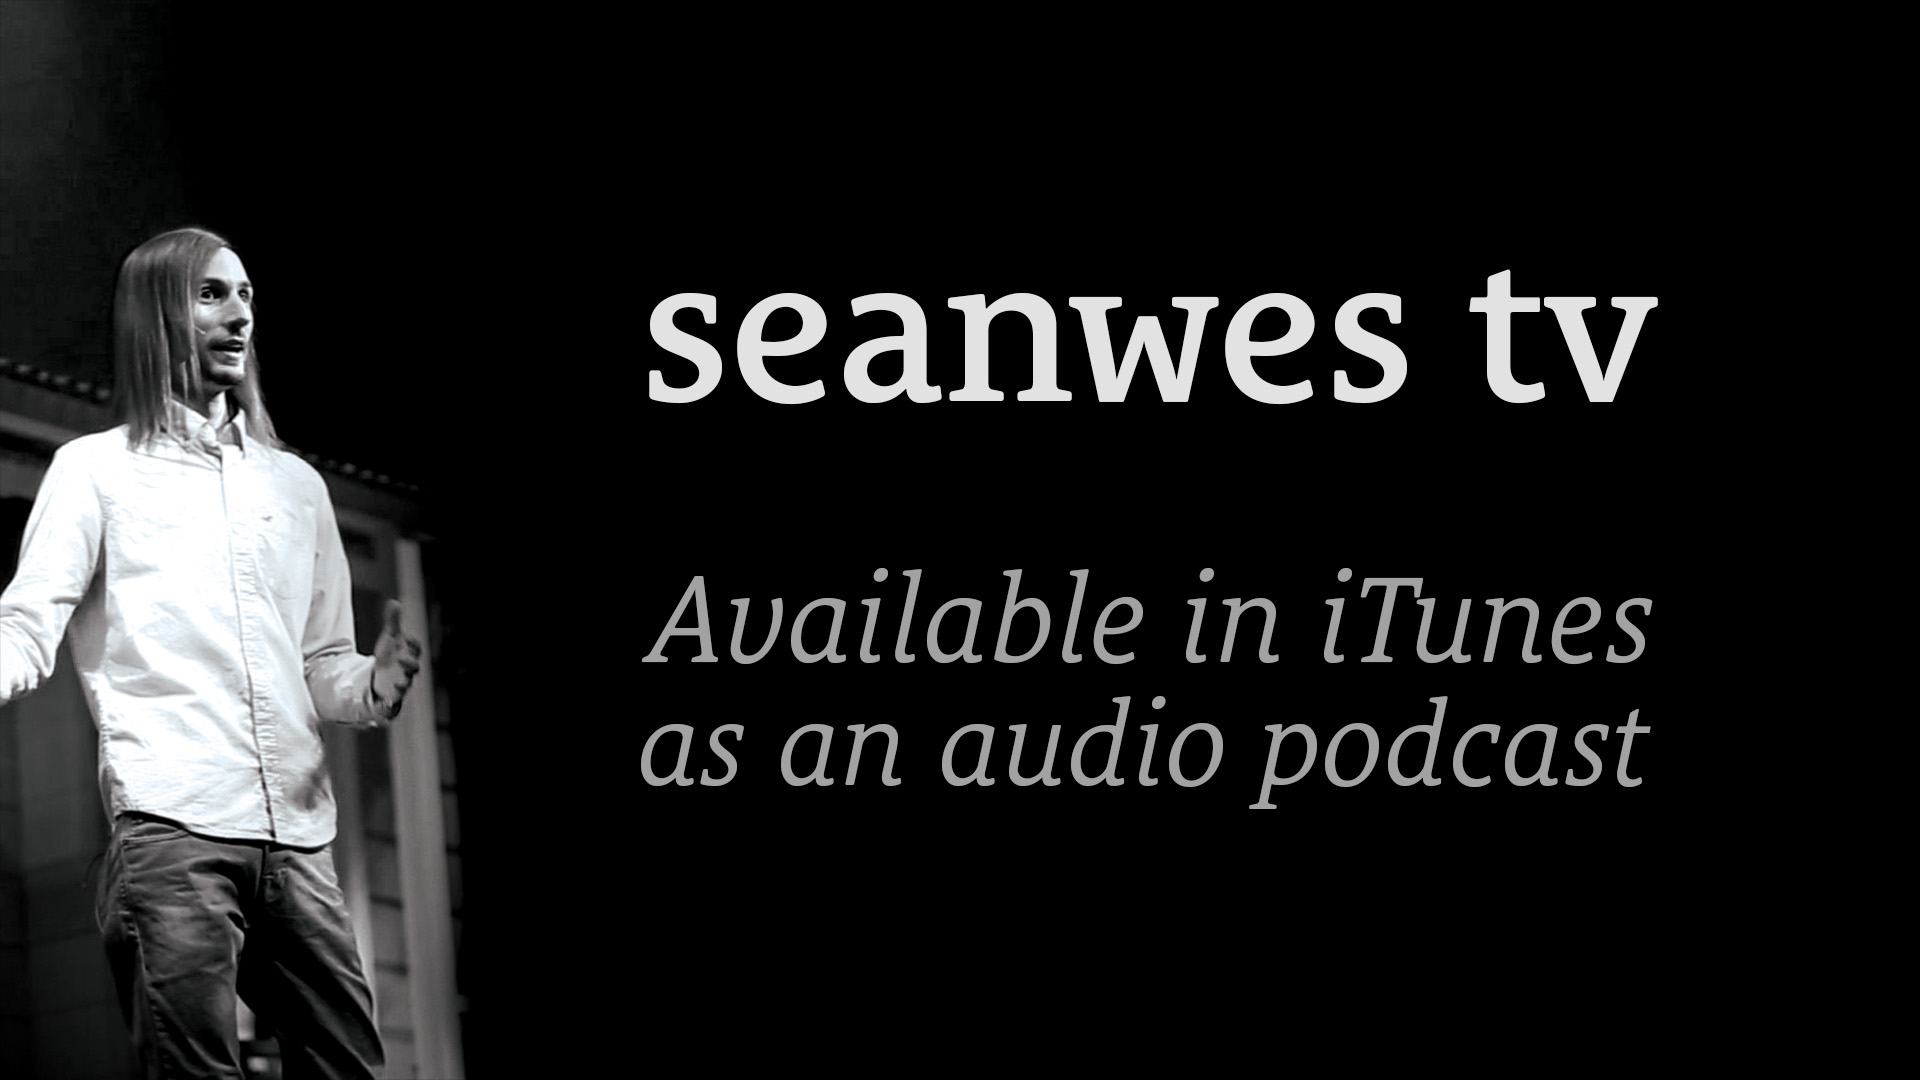 seanwes-tv-available-itunes-podcast